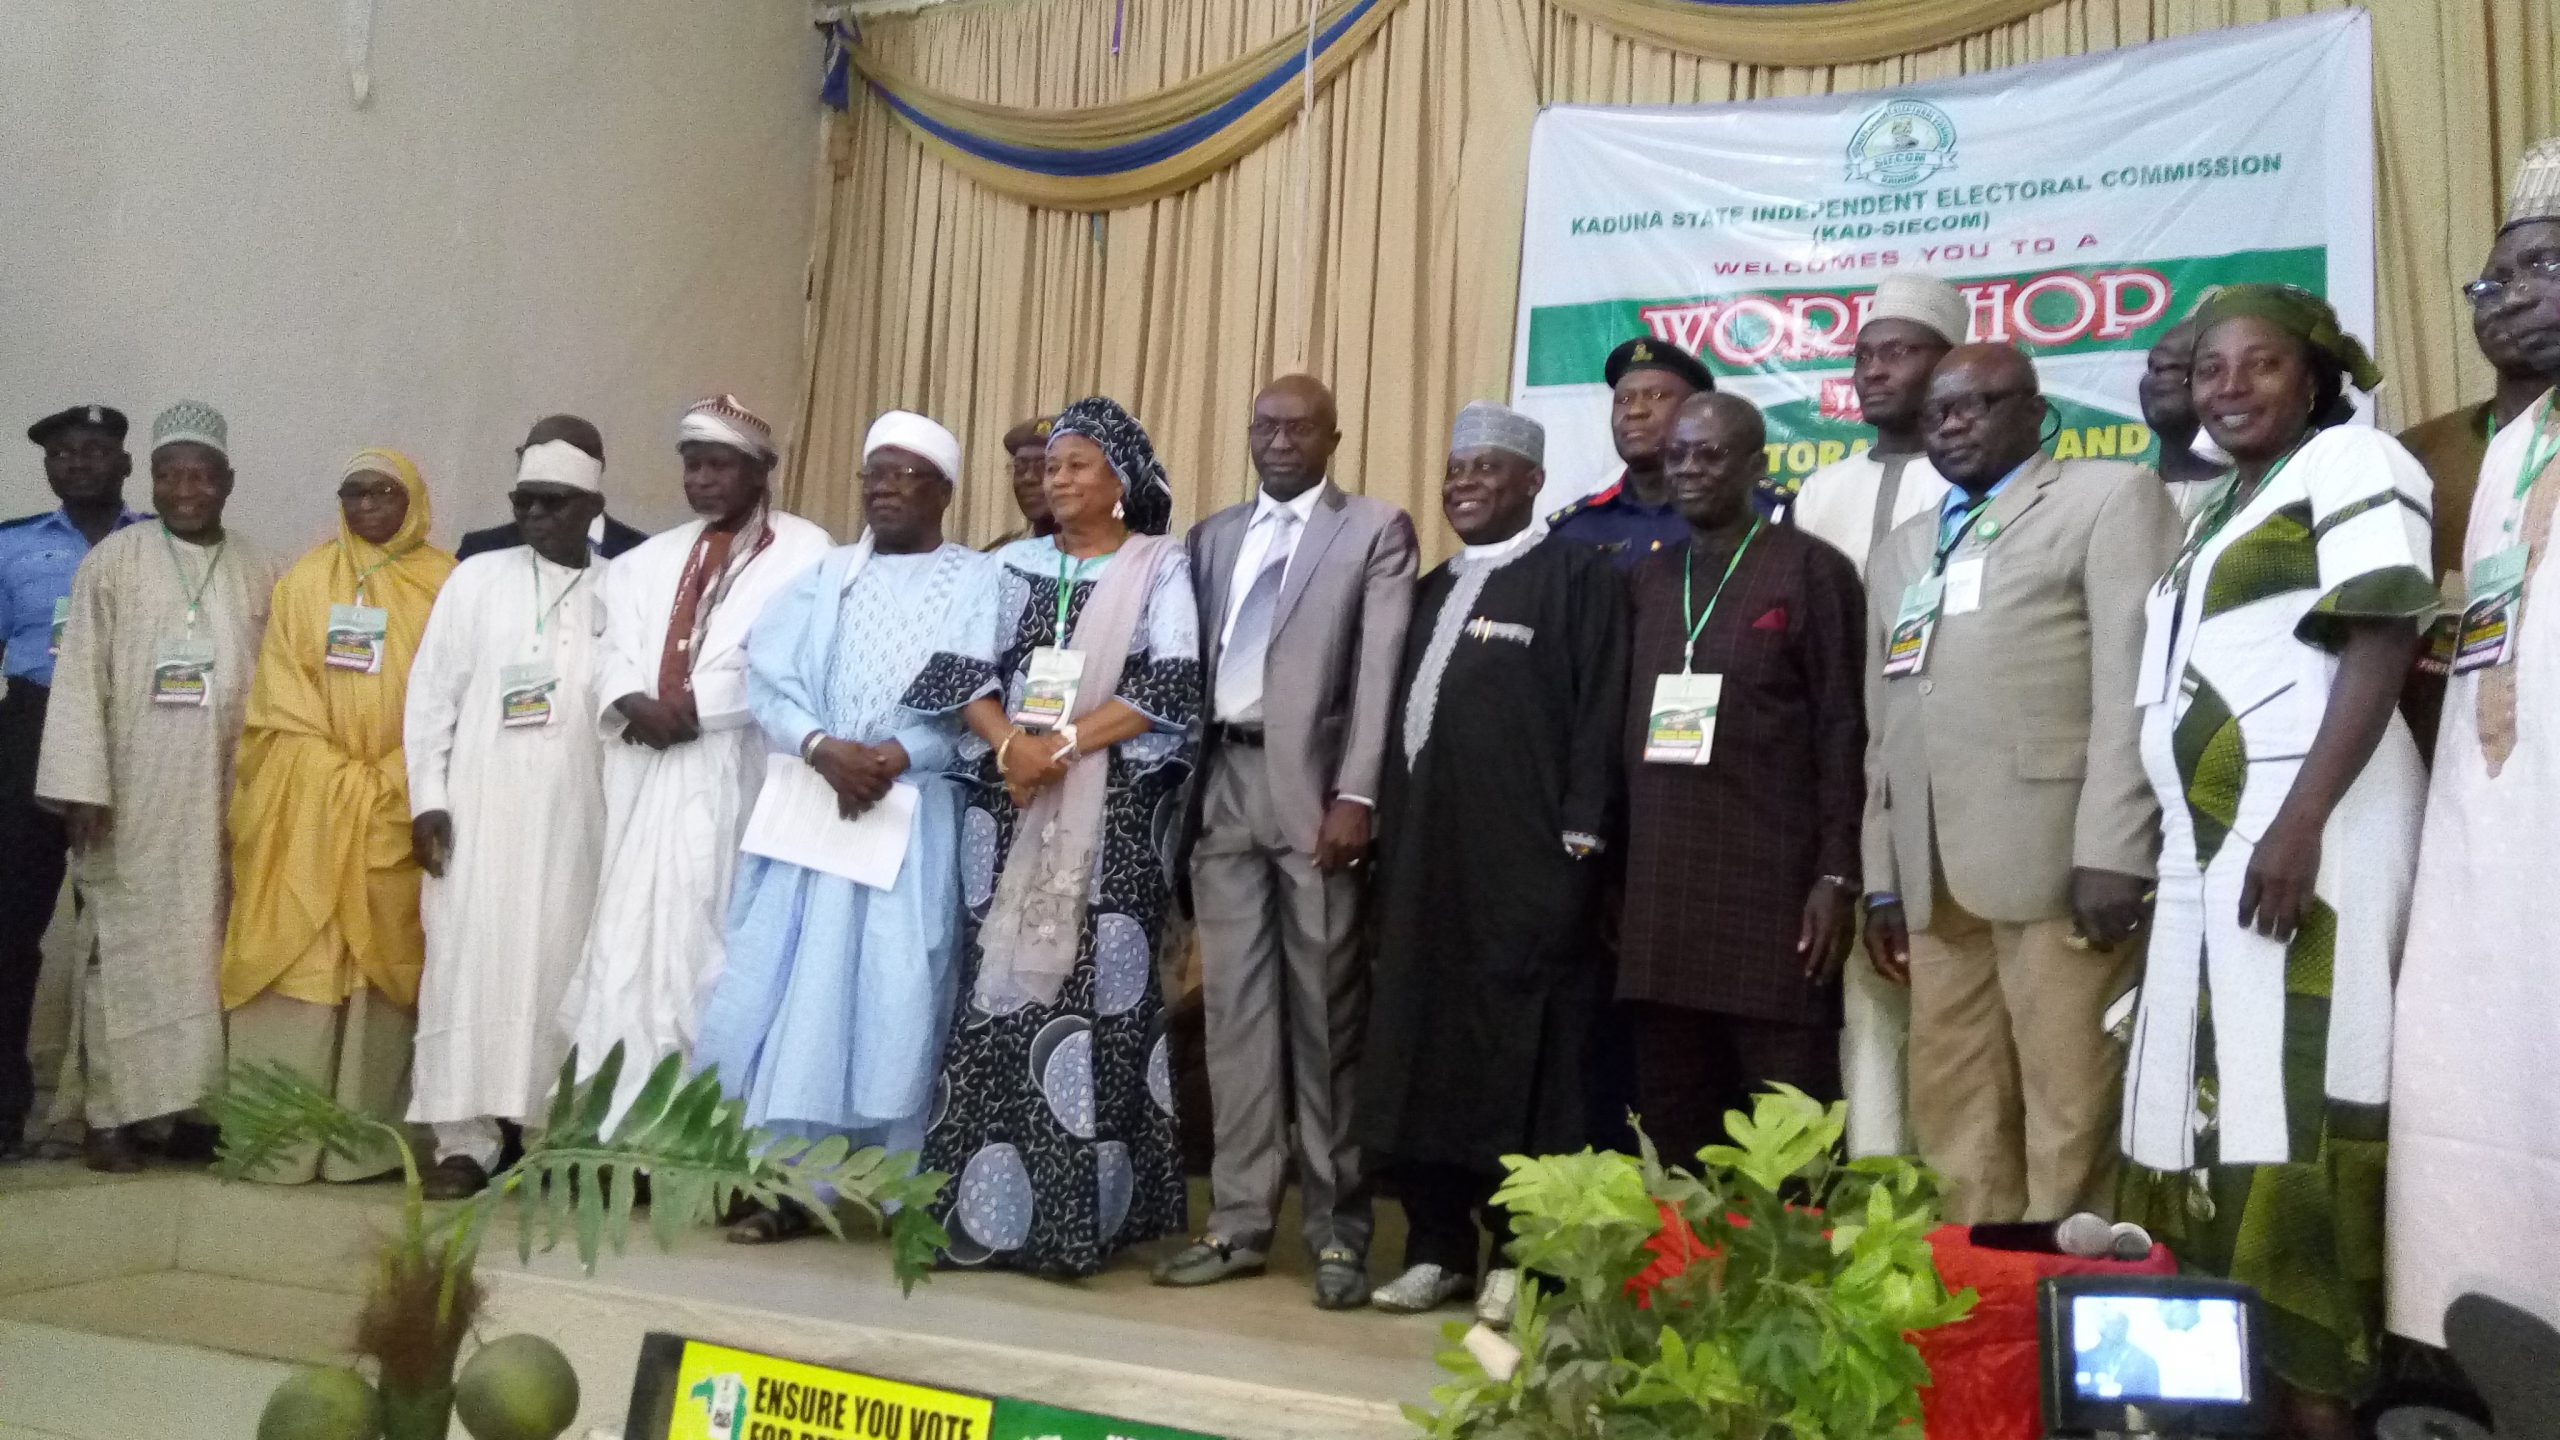 EVM: National Electoral System Should Learn From Our Experience - KAD-SIECOM